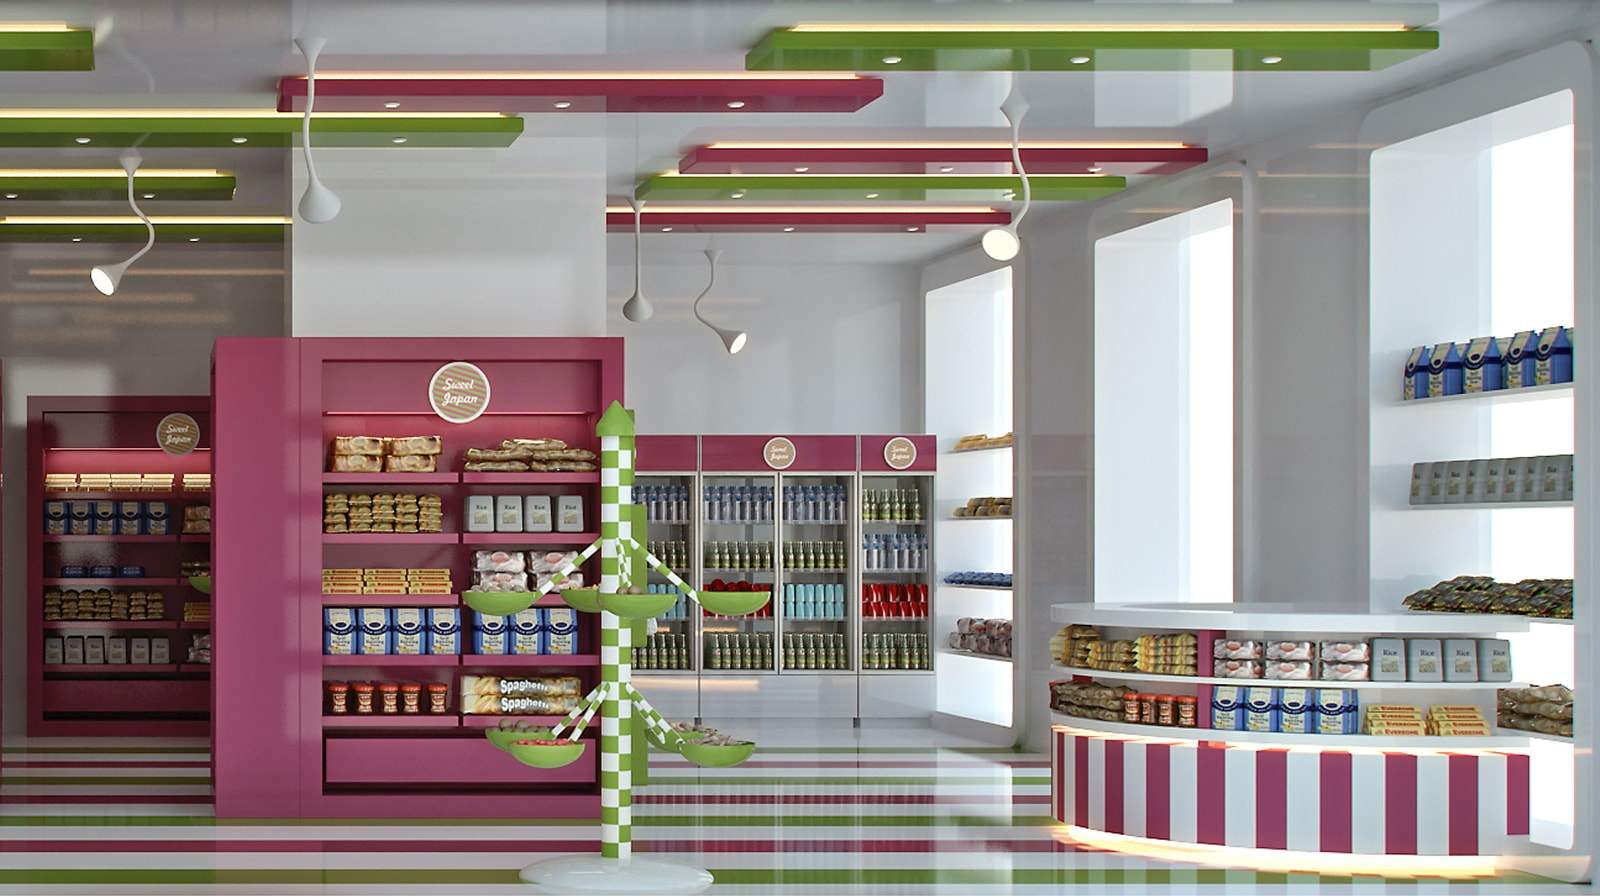 Japan Sweet Shop interior view